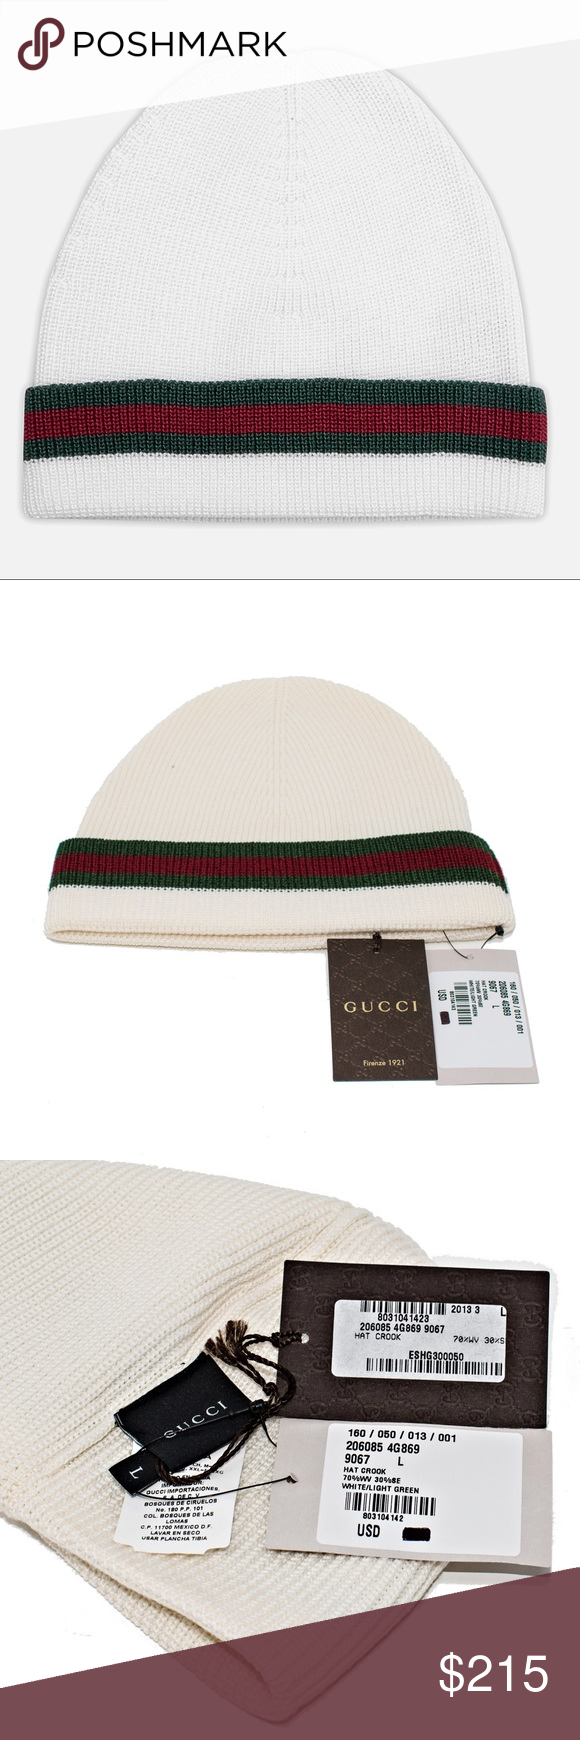 b1b937807d54 NEW GUCCI WOOL AND SILK HAT CROOK BEANIE Authentic. Made in Italy. Item  number  206085. New never used. This hat has original tags attached to it.